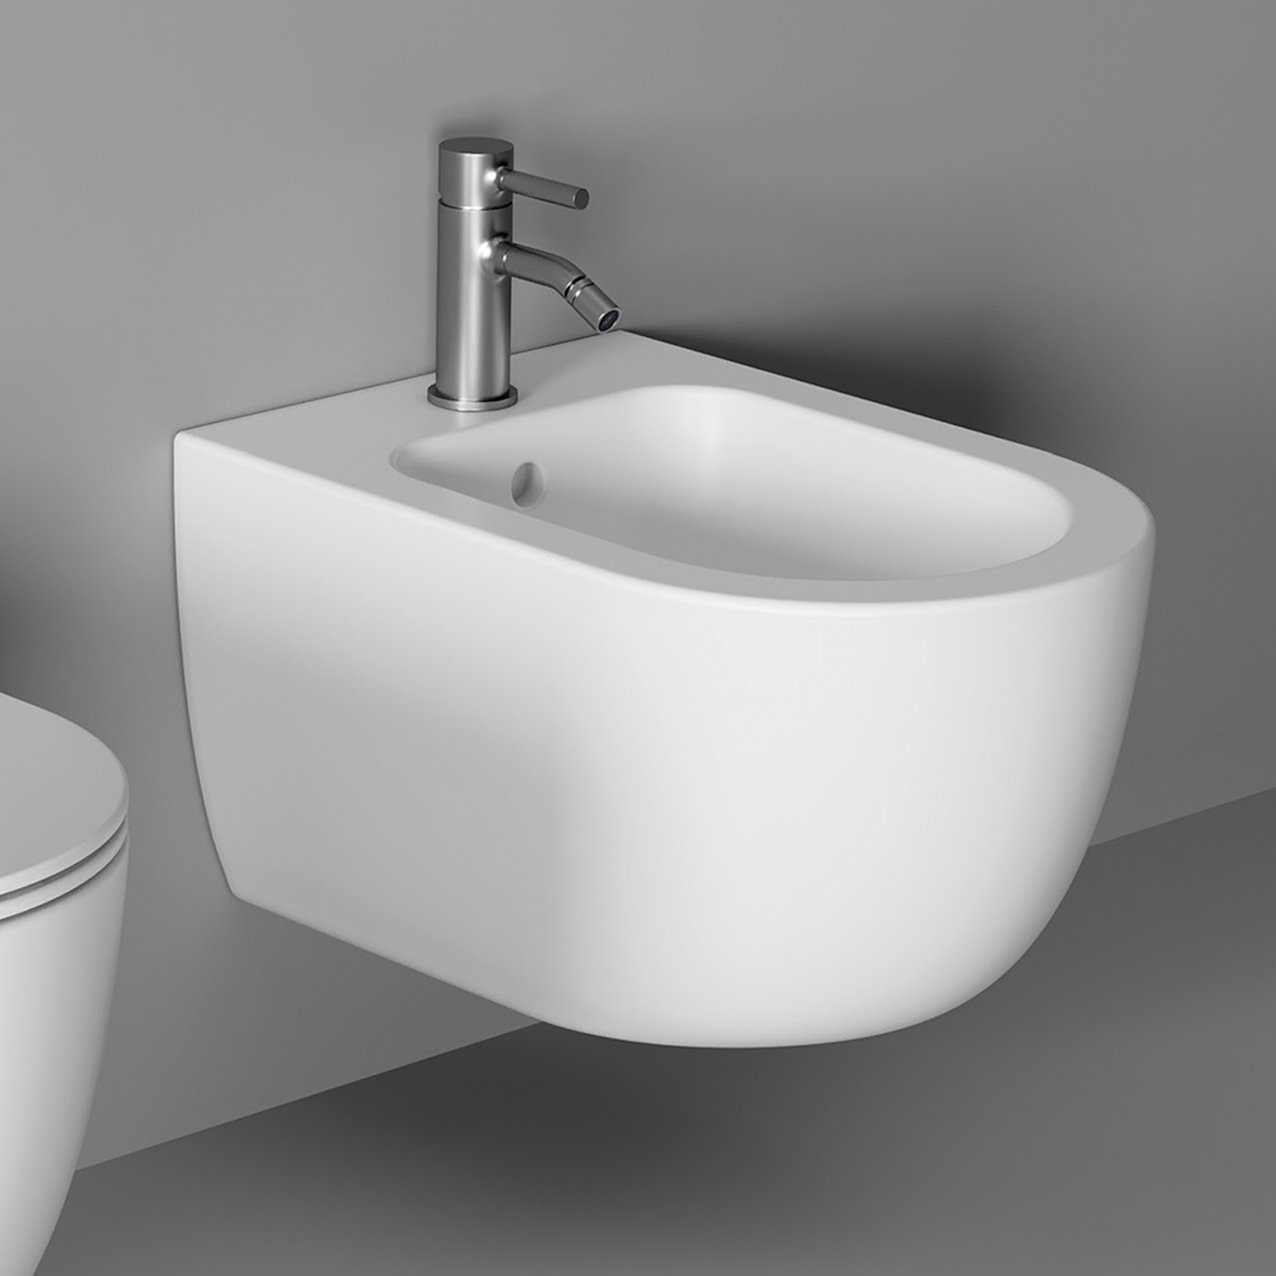 Bidet UNICA 50 wall hung